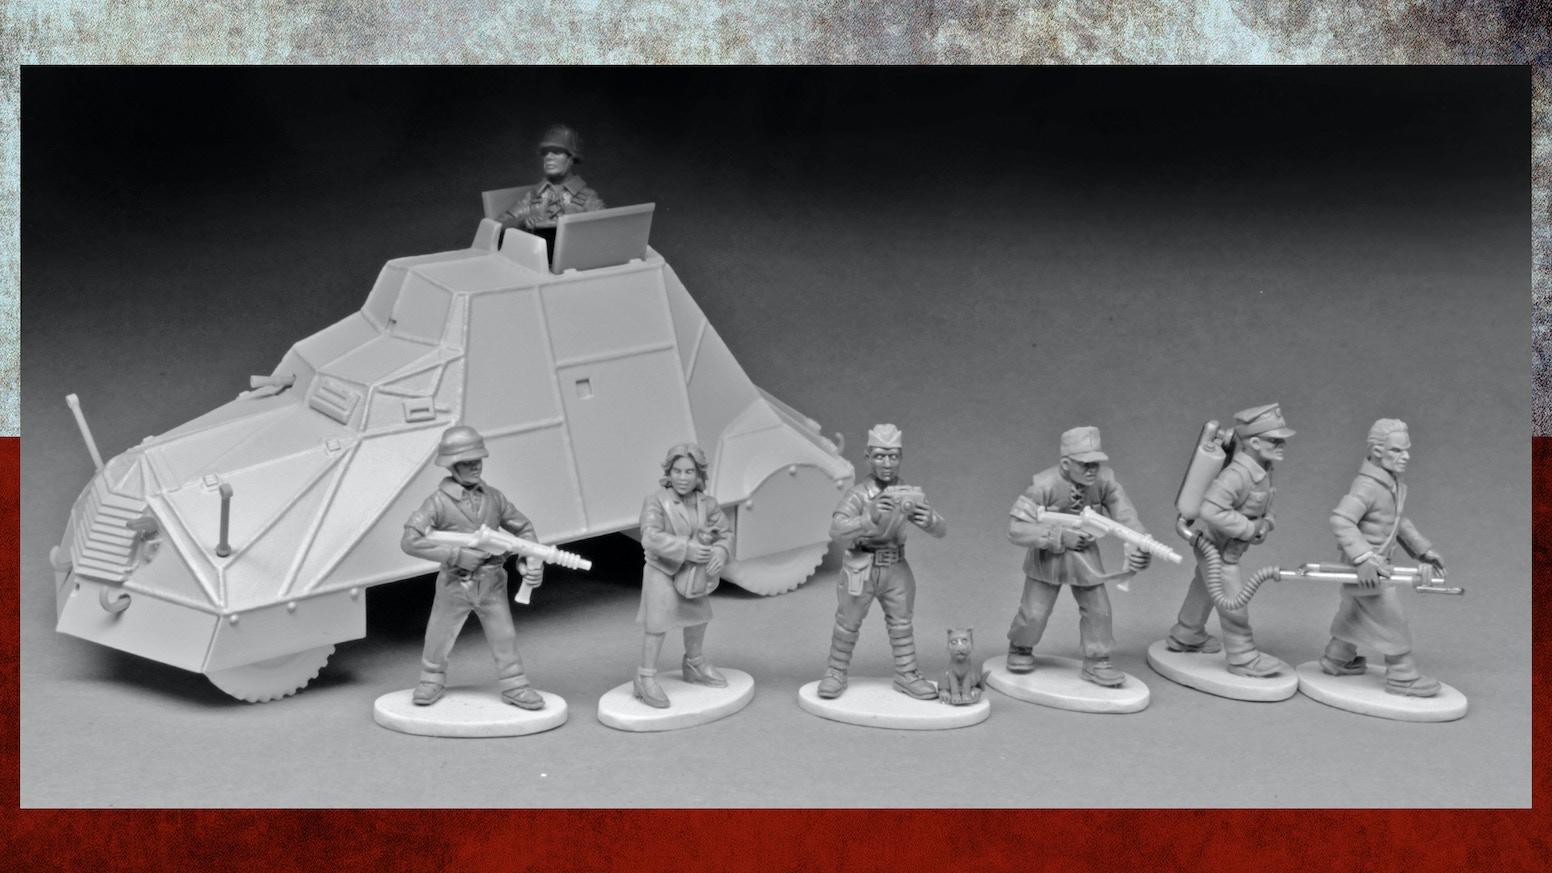 A kickstarter for a 28mm range of Warsaw Uprising 1944 insurgents and armoured car. Suitable for wargaming and modeling.